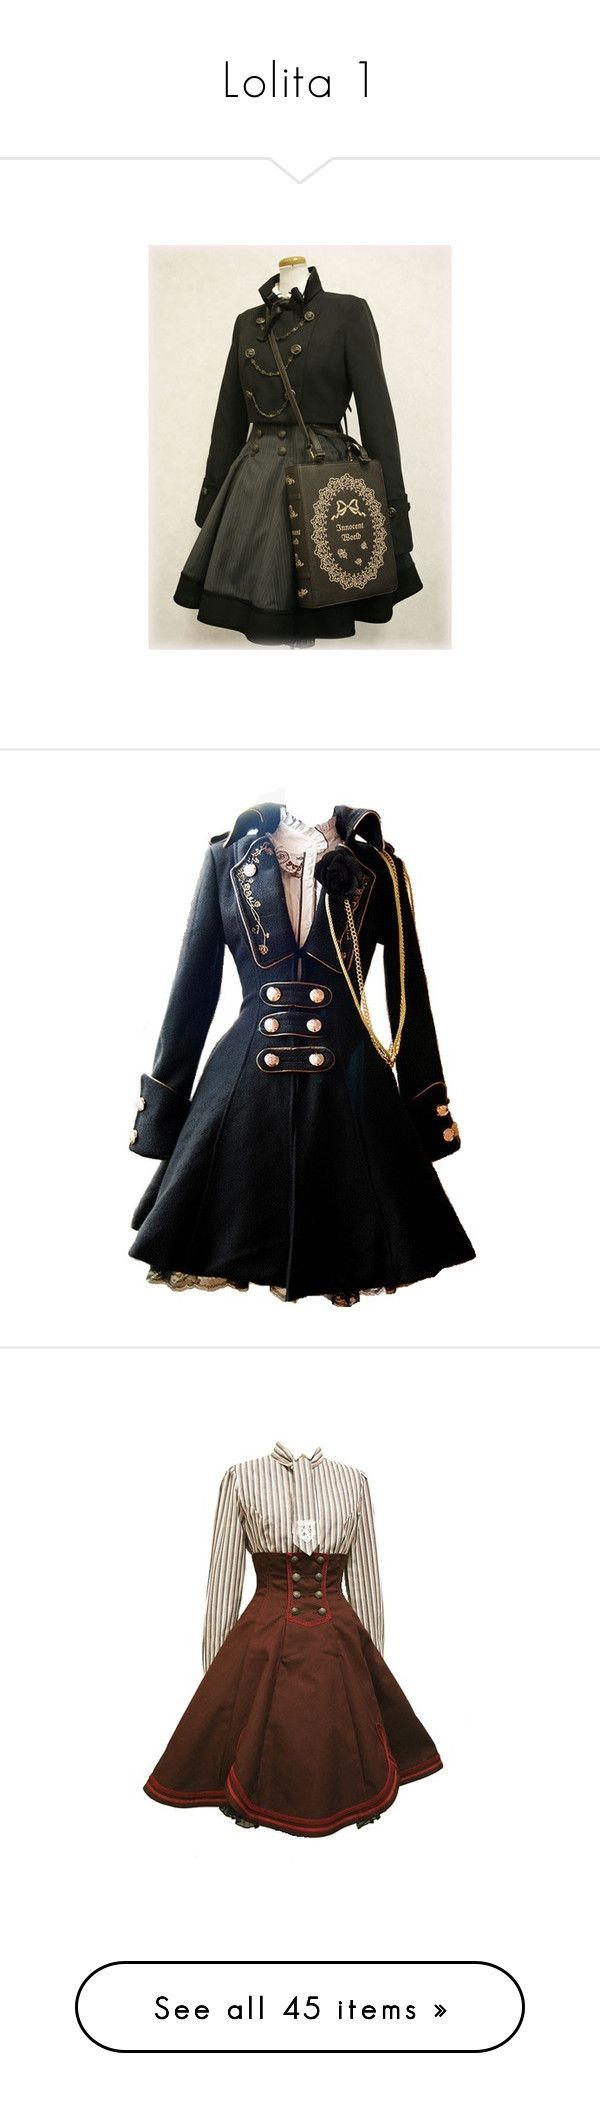 """""""Lolita 1"""" by ginger-snap-life ❤ liked on Polyvore featuring dresses, coats, jackets, steampunk, costume, short dresses, lolita, blue, butterfly print dress and military style dress"""